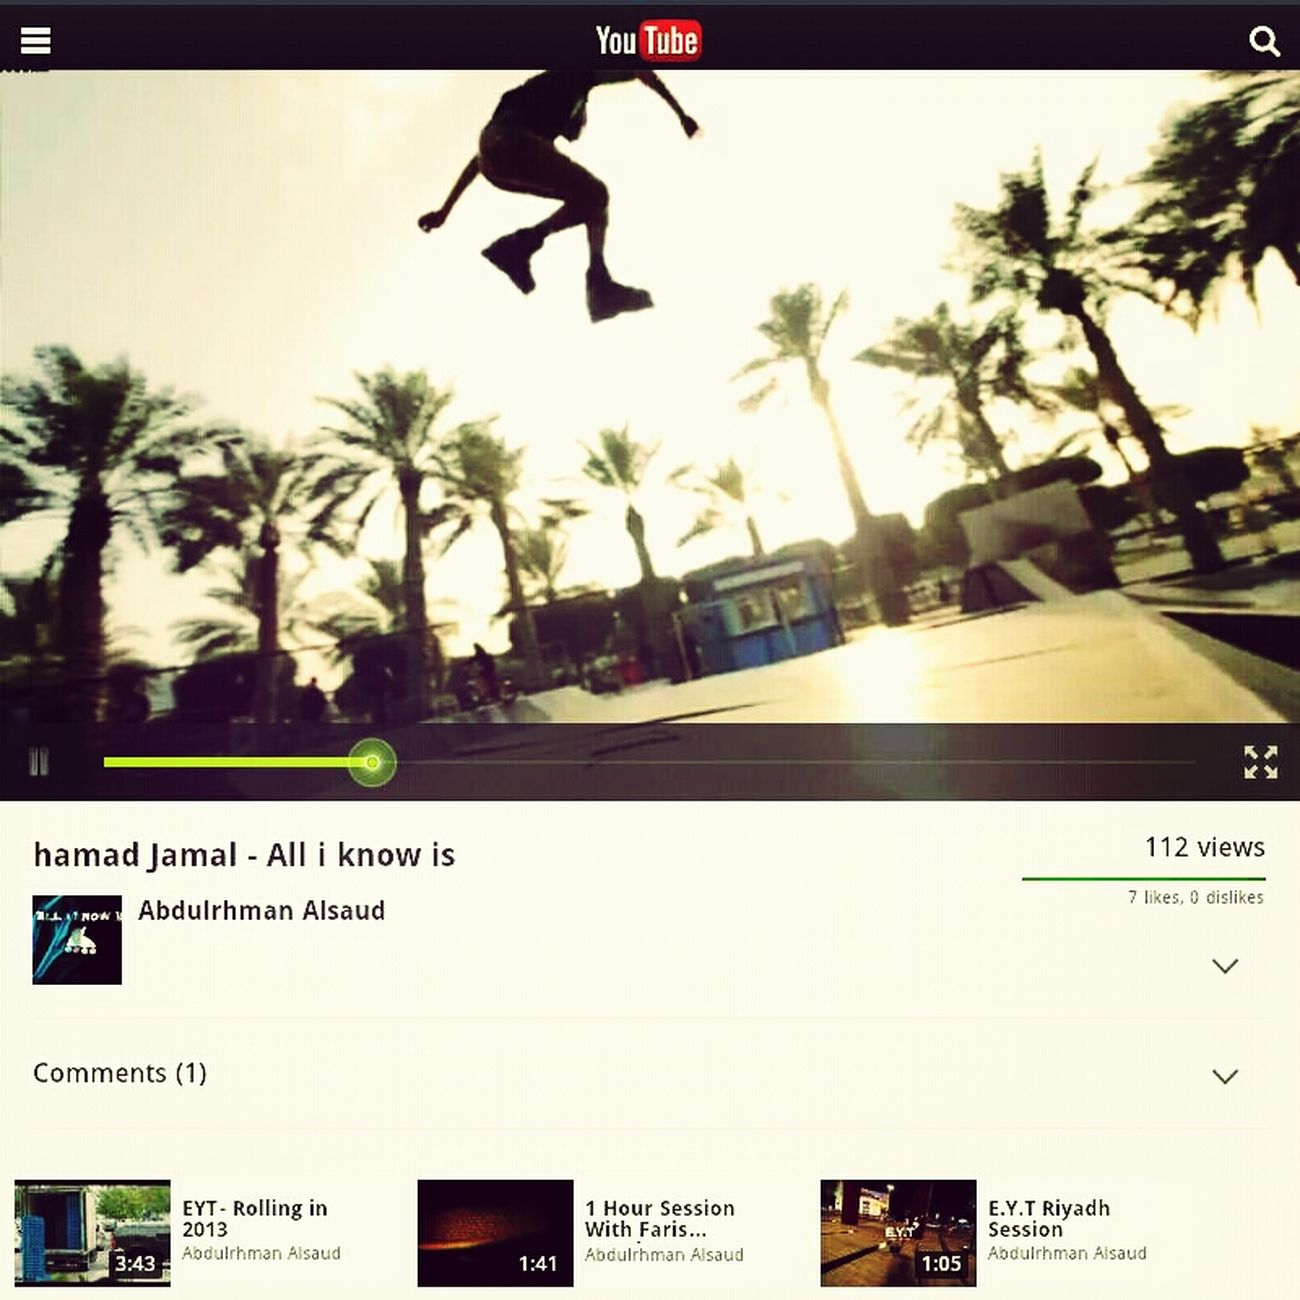 "Skate Kuwait Skate Park تصو Watch ""hamad Jamal - All I Know Is"" On YouTube - Https://www.youtube.com/watch?v=ISJPVi5okVQ&feature=youtube_gdata_ Watch ""hamad Jamal - All I Know Is"" On YouTube - Https://www.youtube.com/watch?v=ISJPVi5okVQ&feature=youtube_gdata_player"